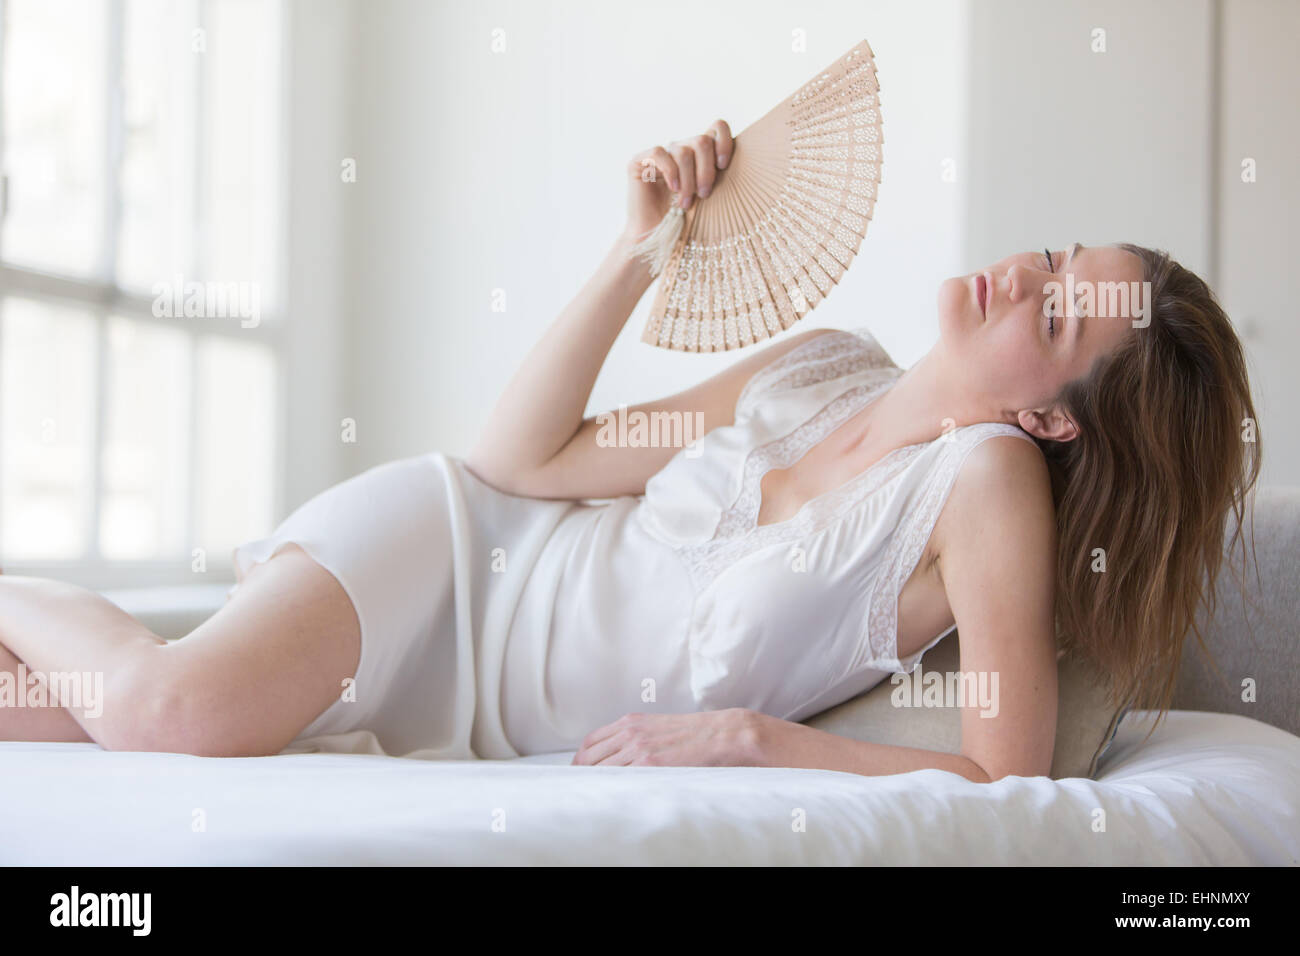 Woman cooling her face with a fan. - Stock Image